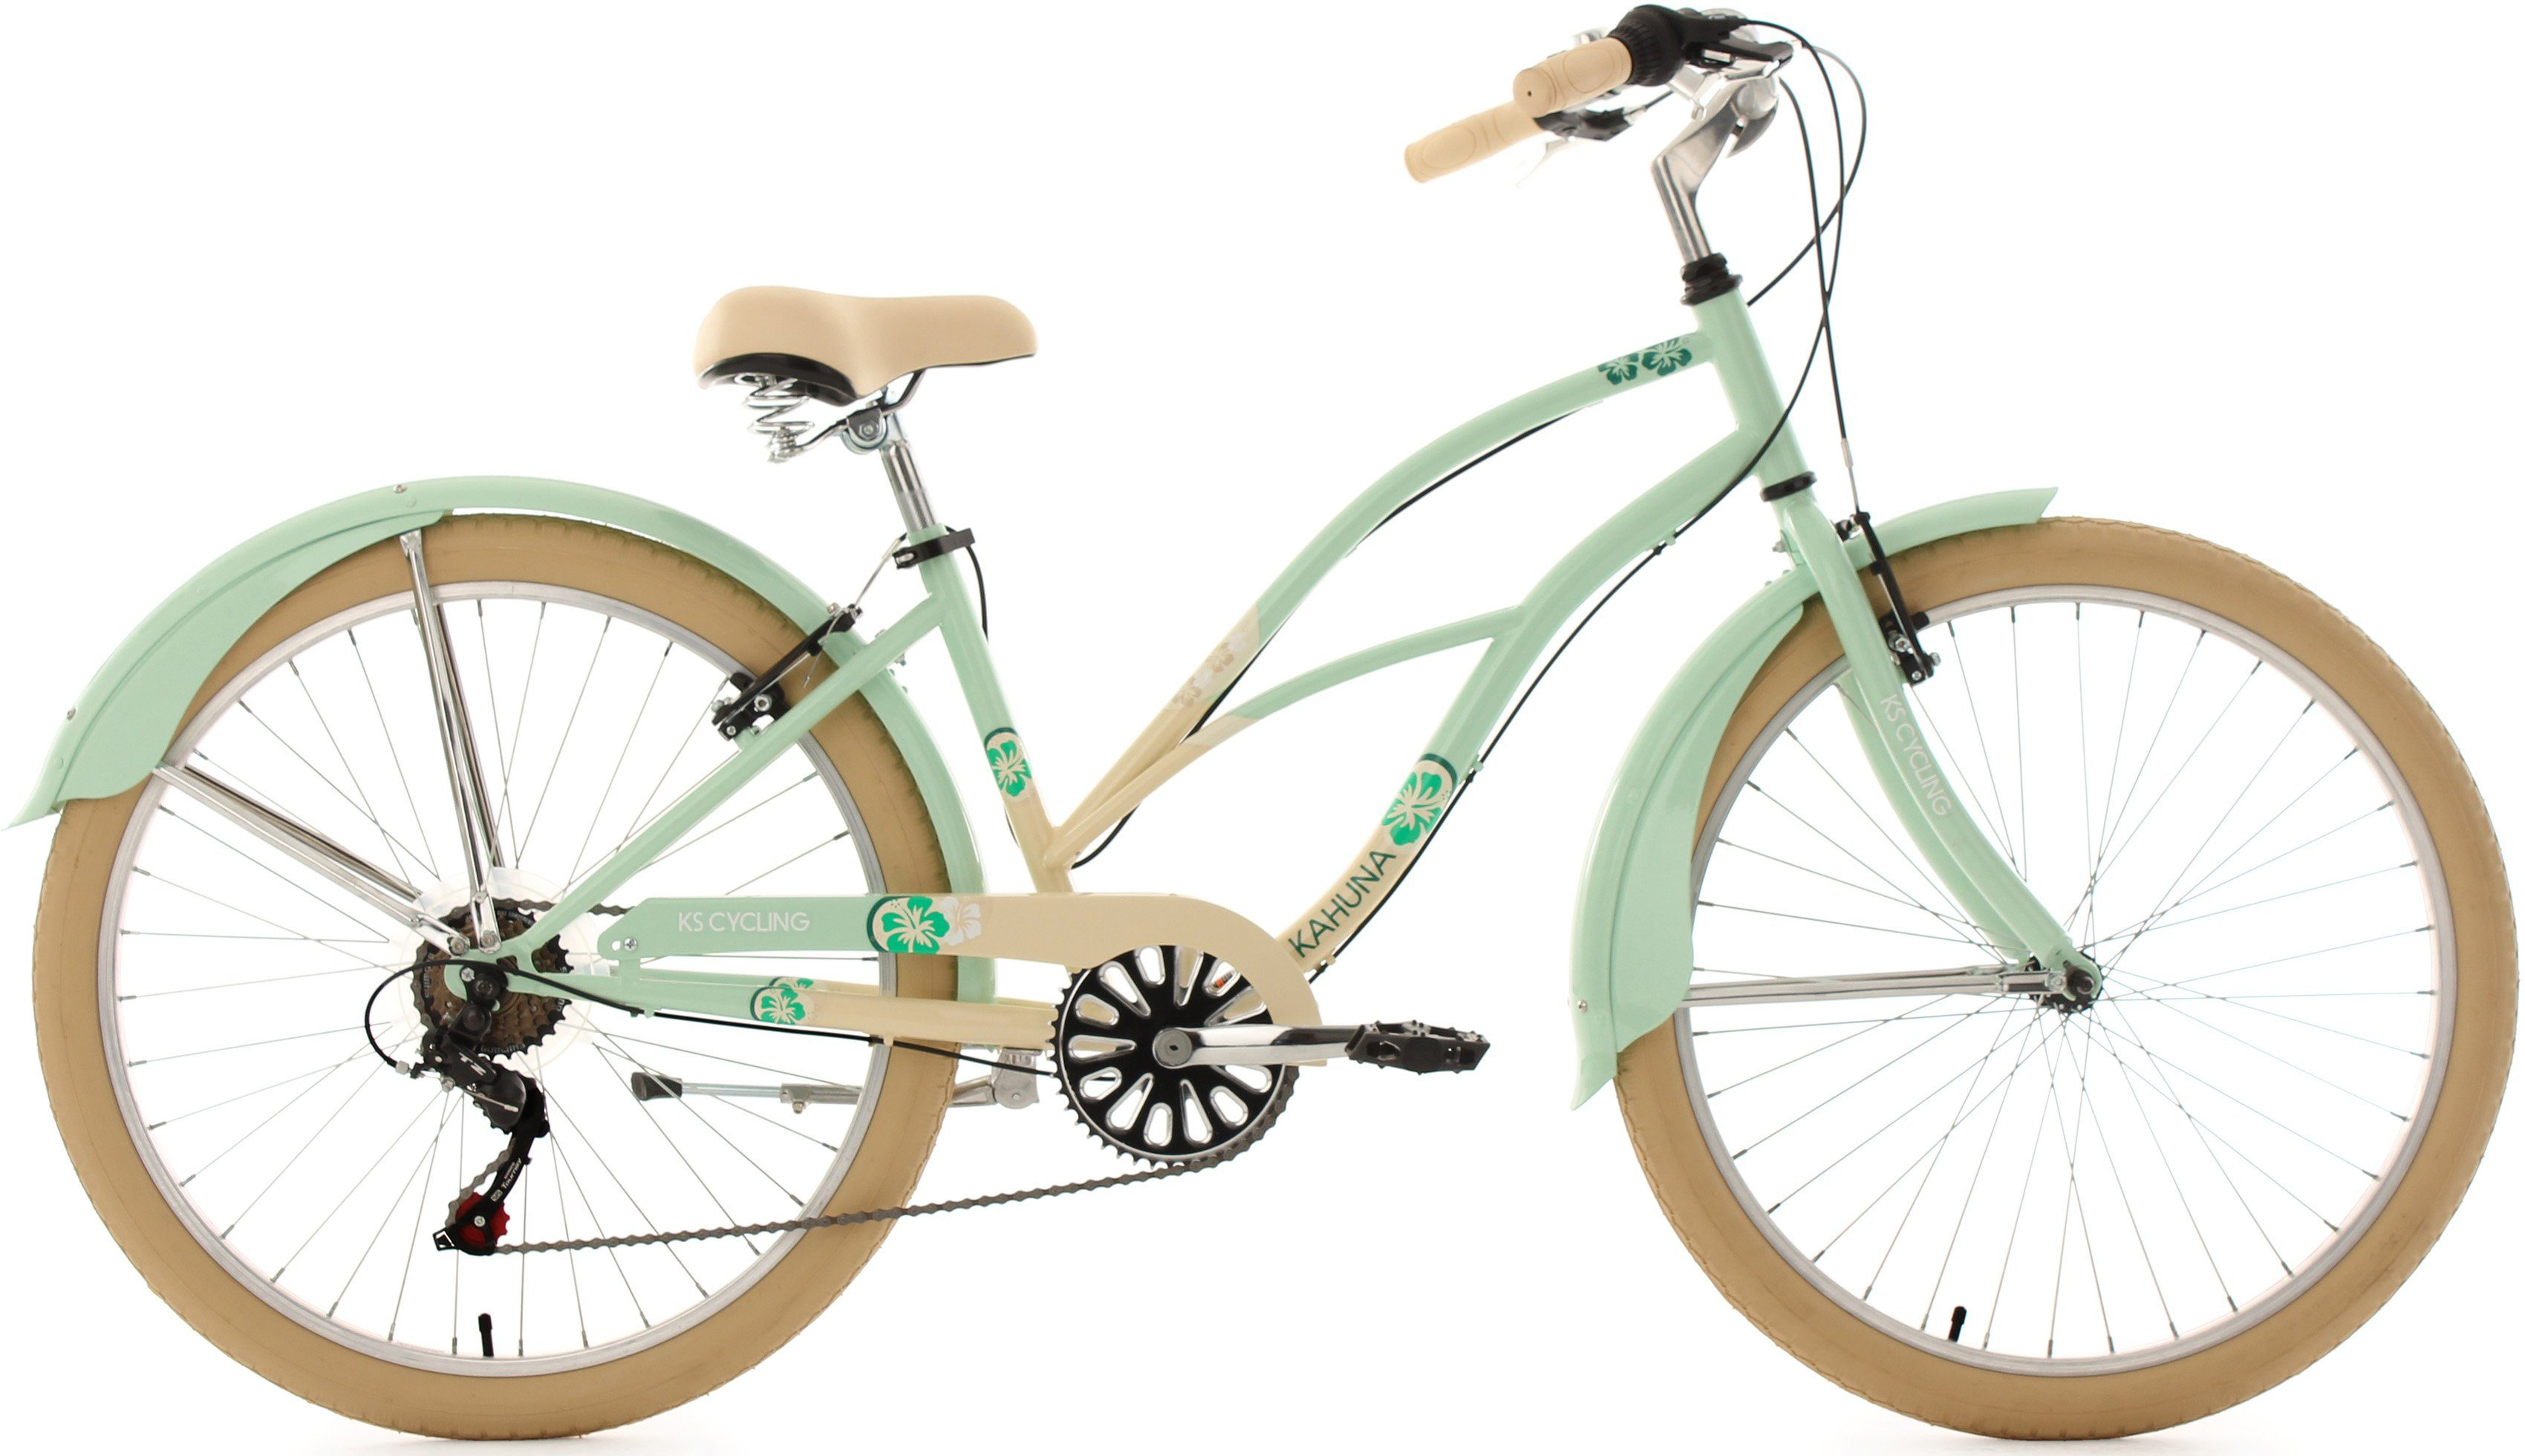 KS Cycling Beachcruiser Damen, 26 Zoll, beige-mint, 6 Gang-Kettenschaltung, »Kahuna«